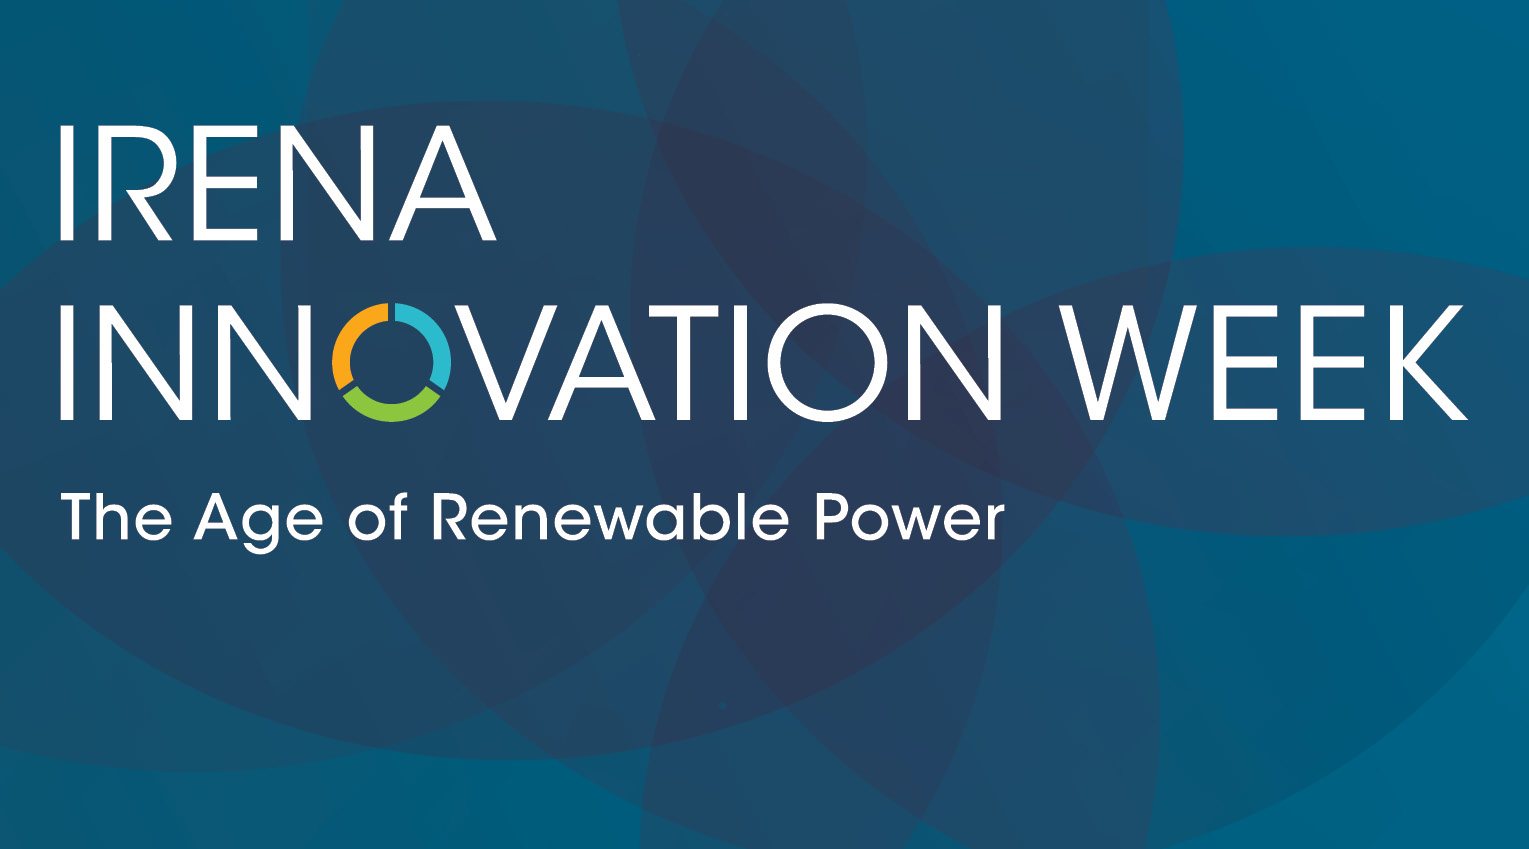 IRENA Innovation Week Live Video Stream